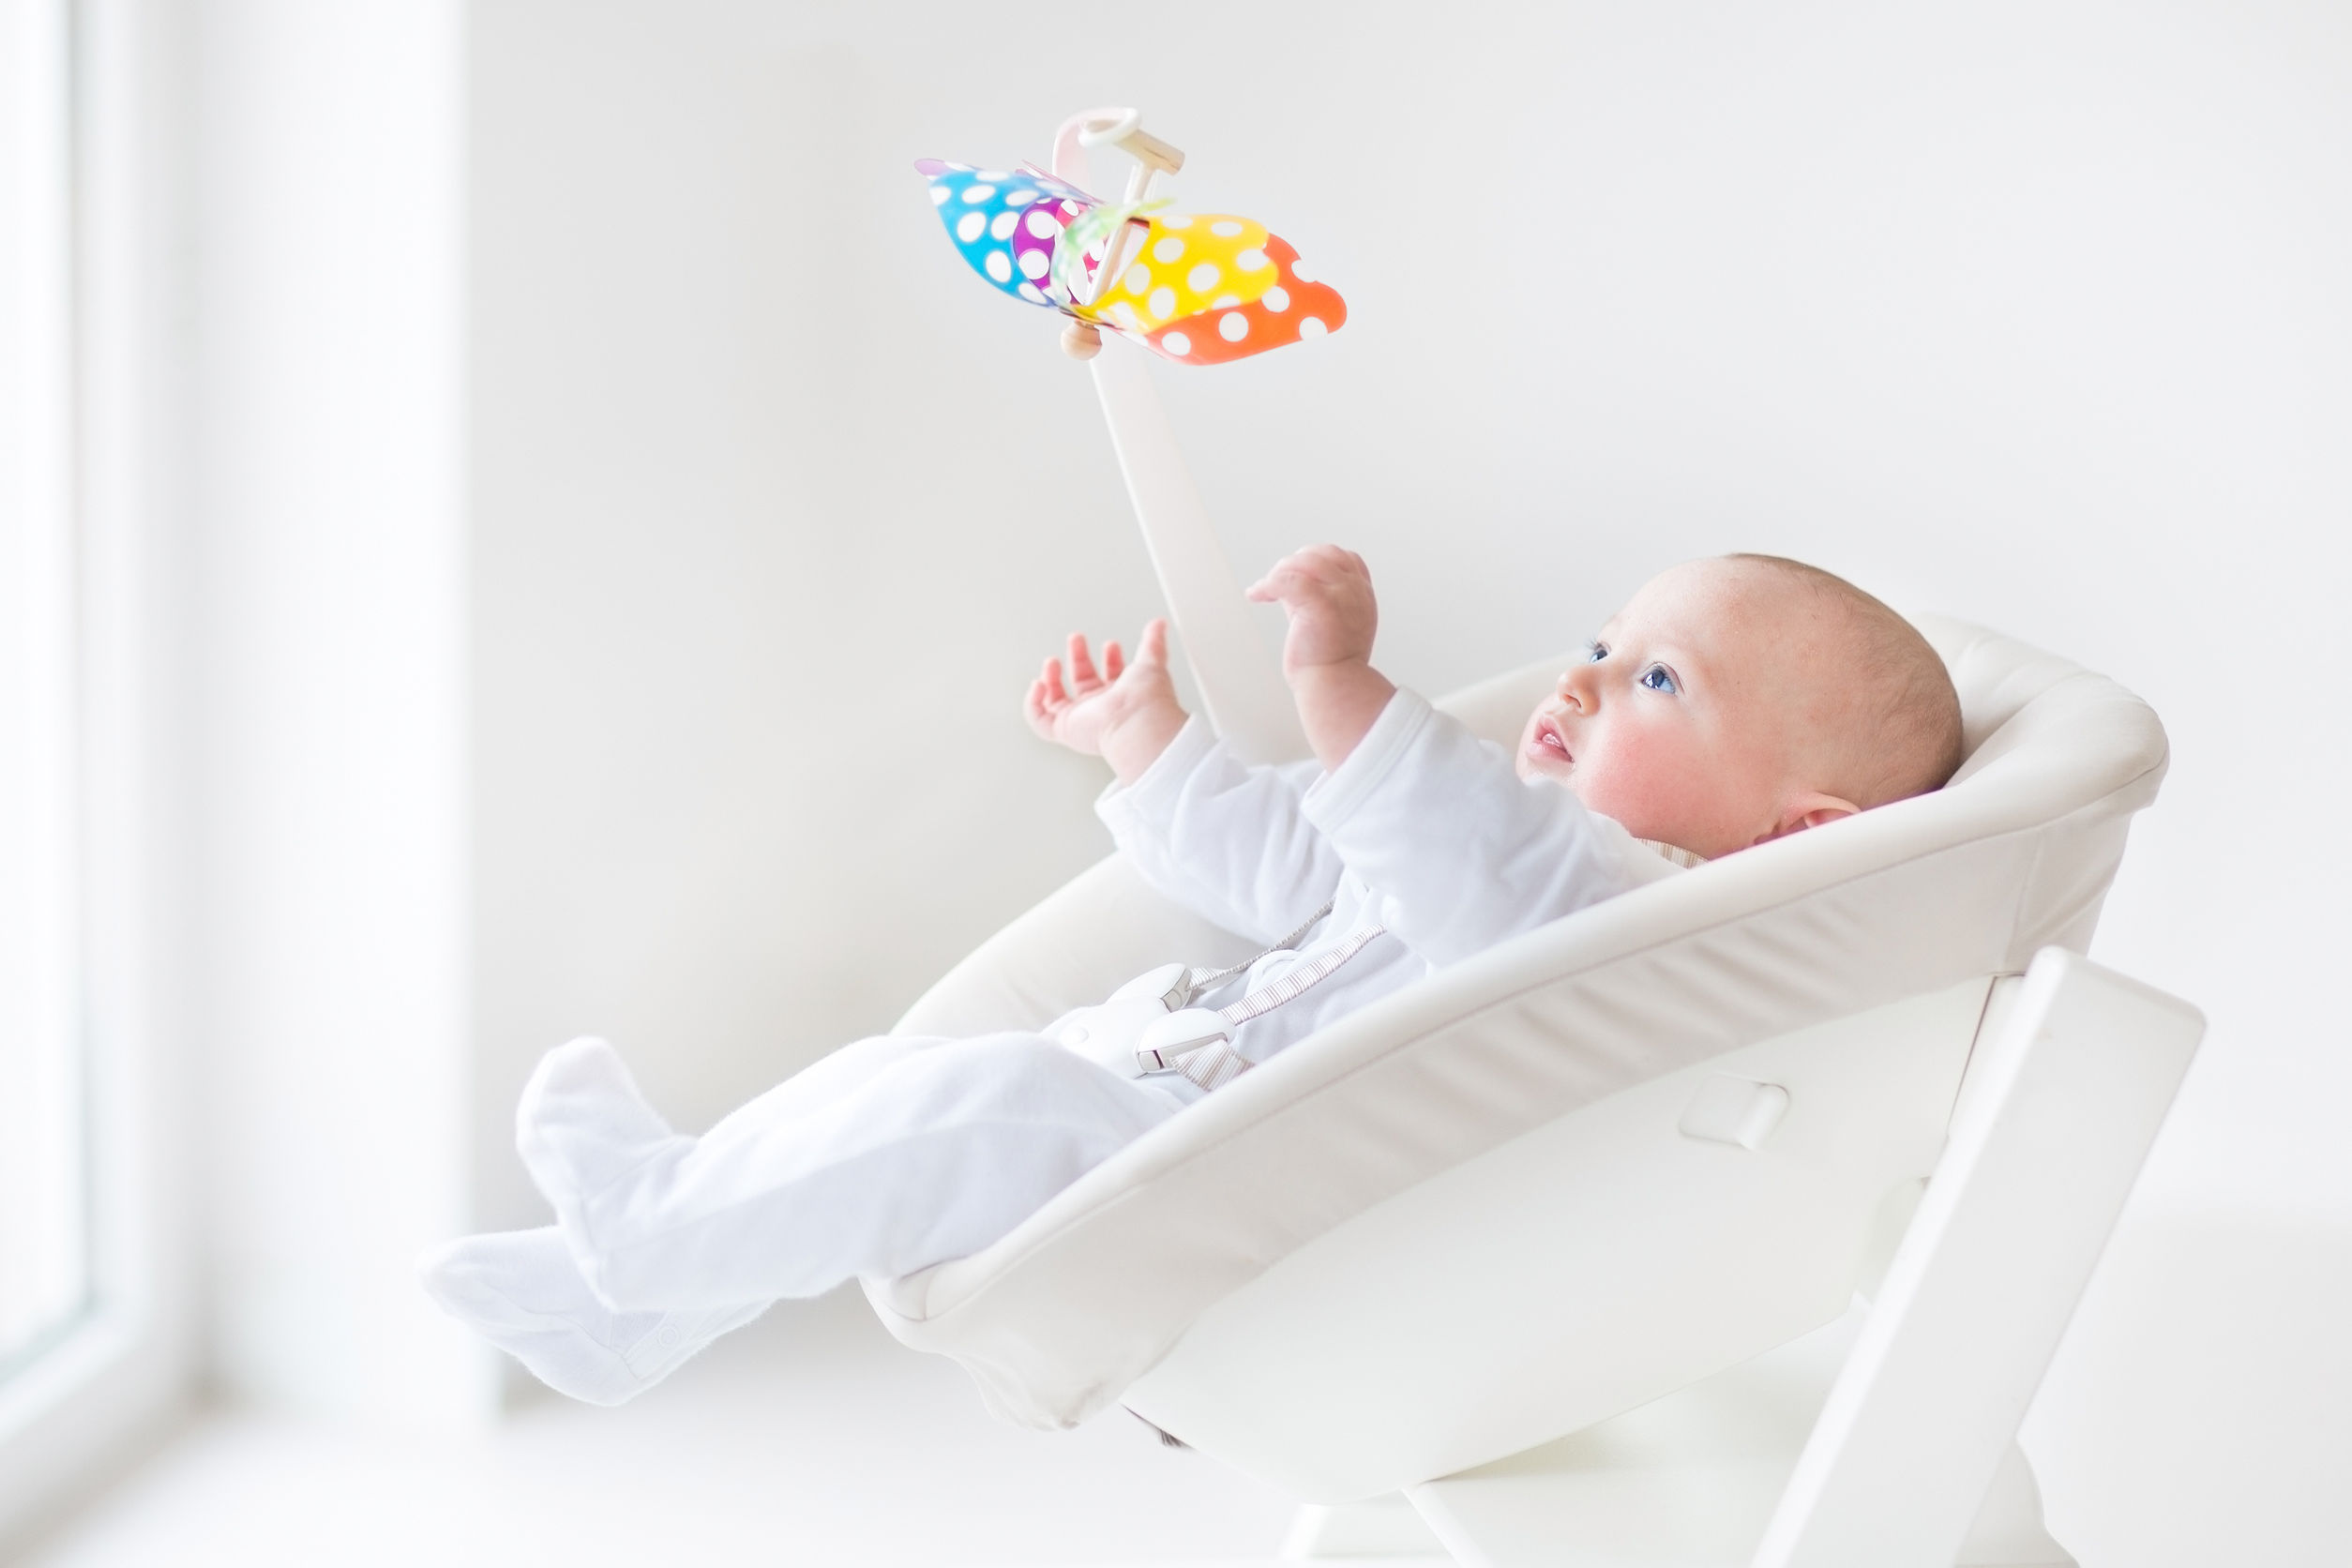 30780455 - cute newborn baby boy watching a colorful mobile toy sitting in a white high chair next to a window